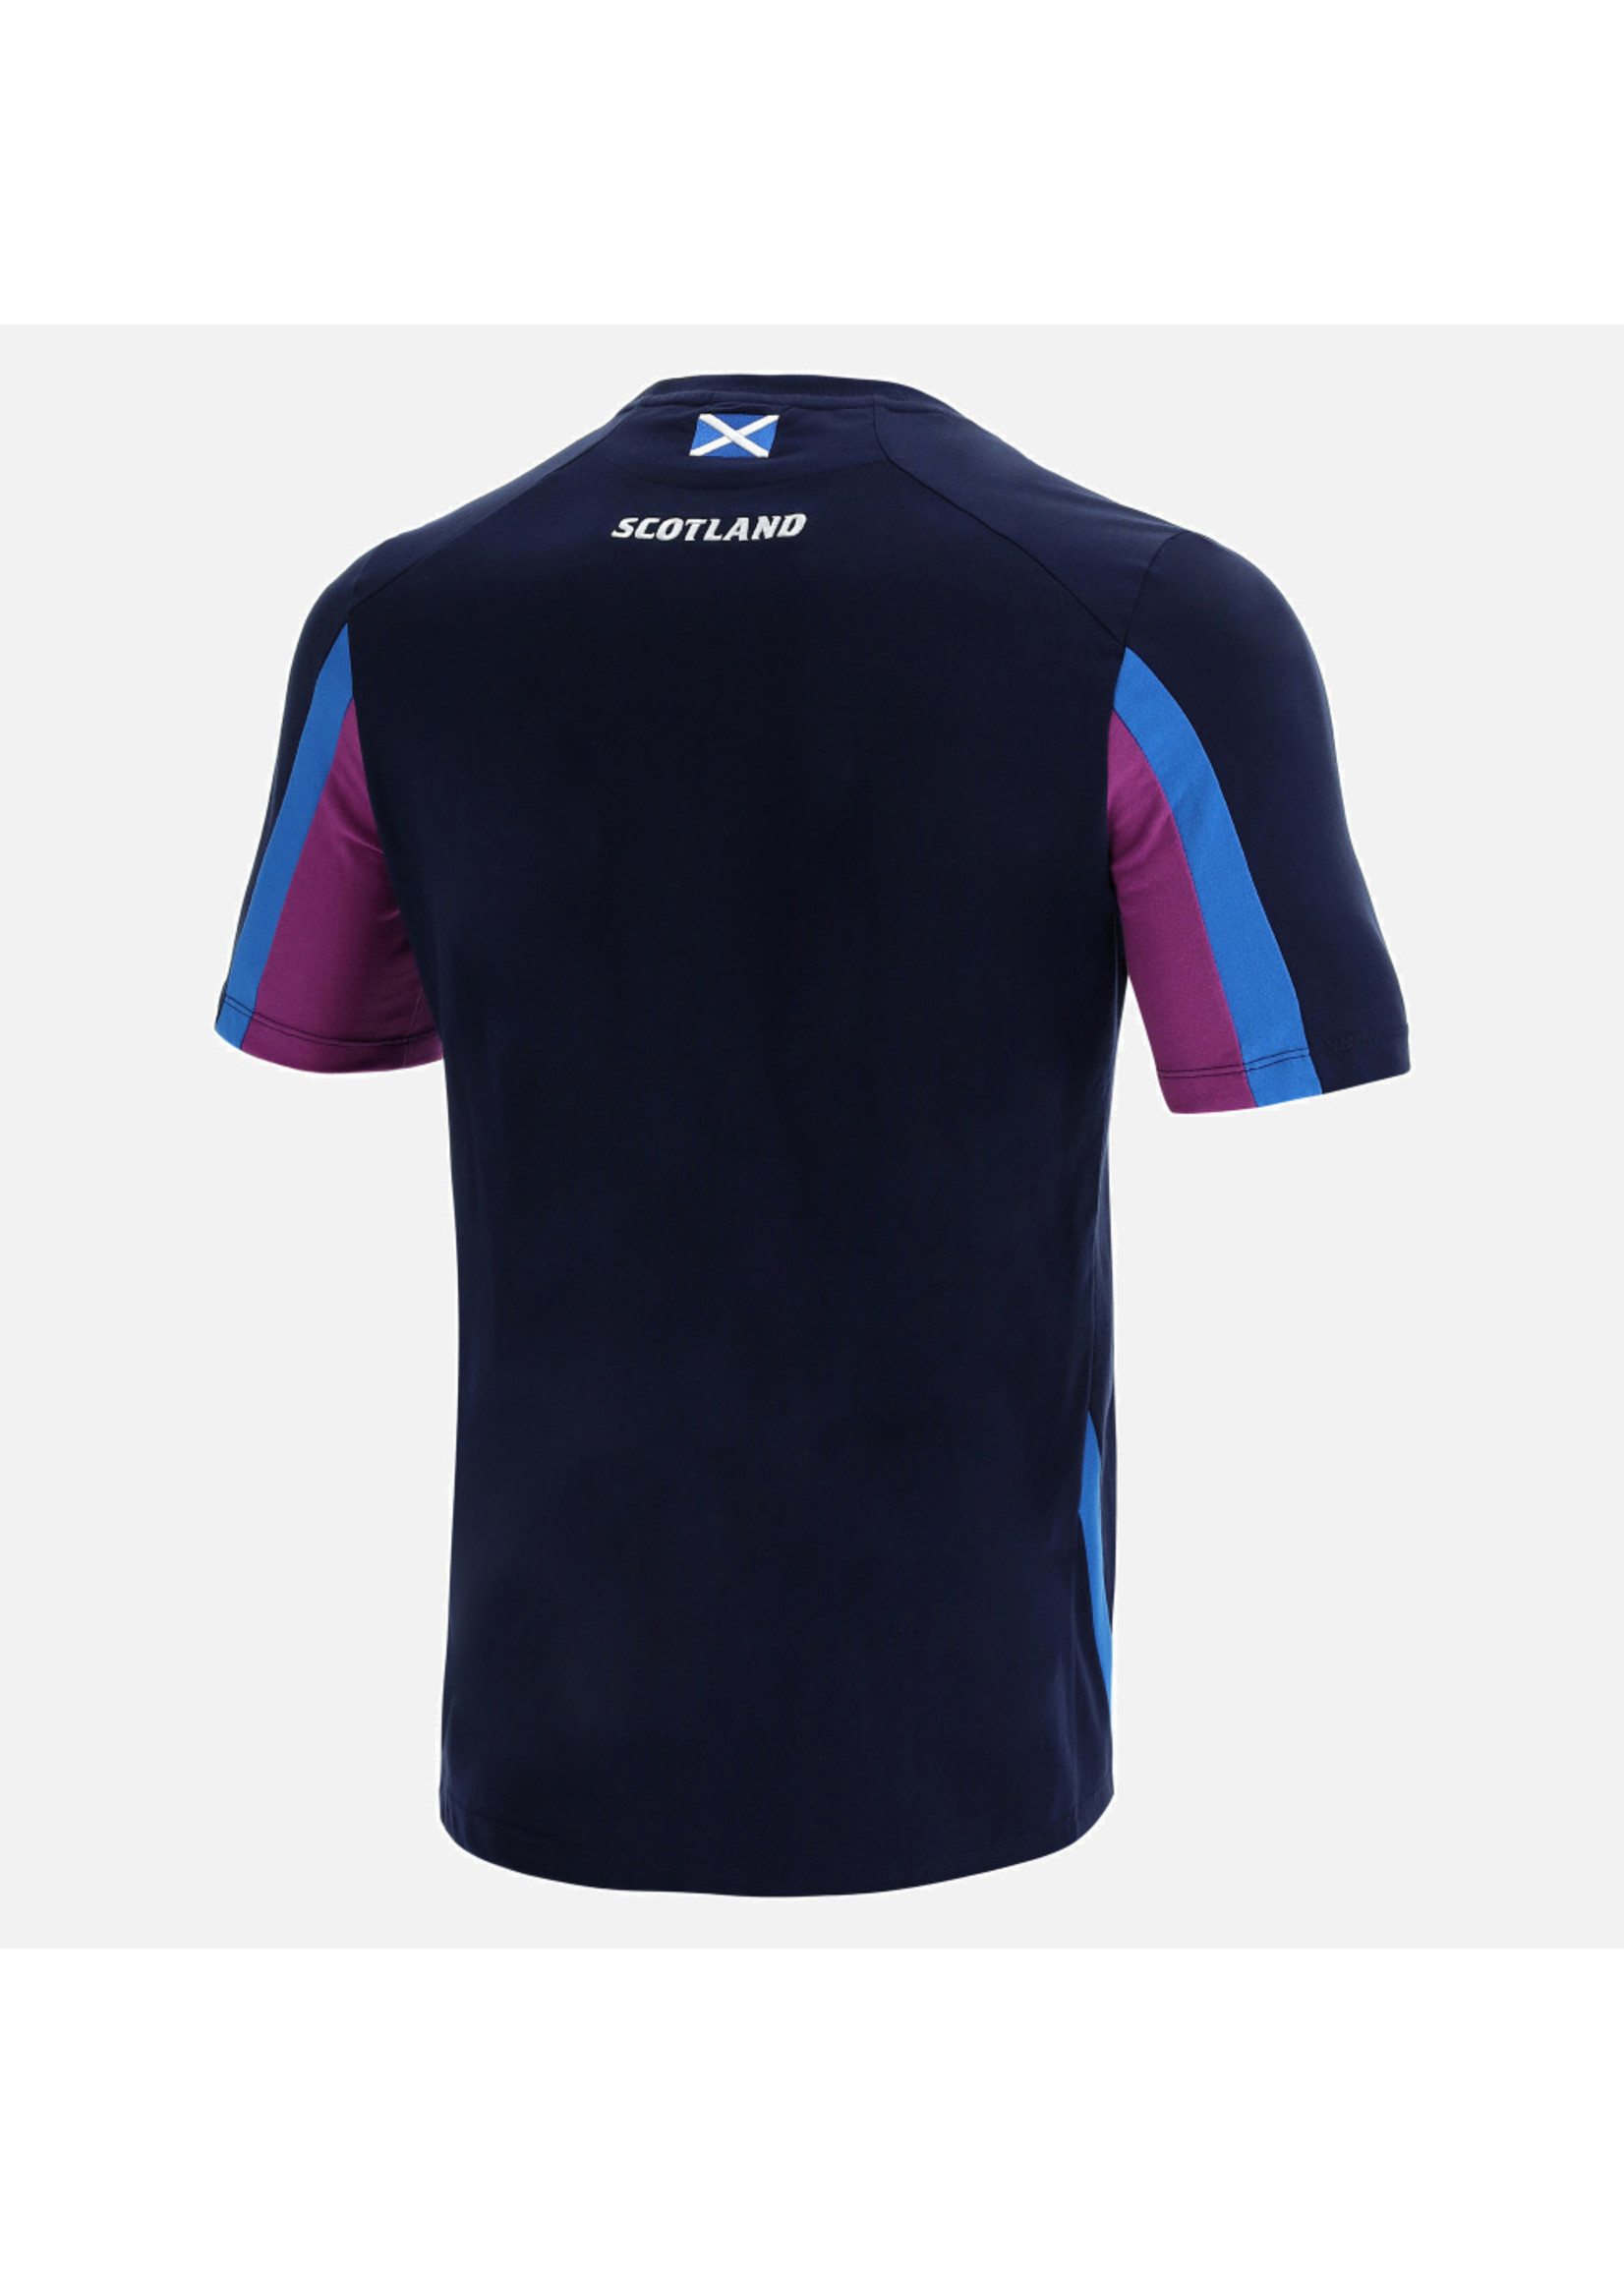 Macron Macron Scotland Rugby - Official Travel T Shirt (2021/22)